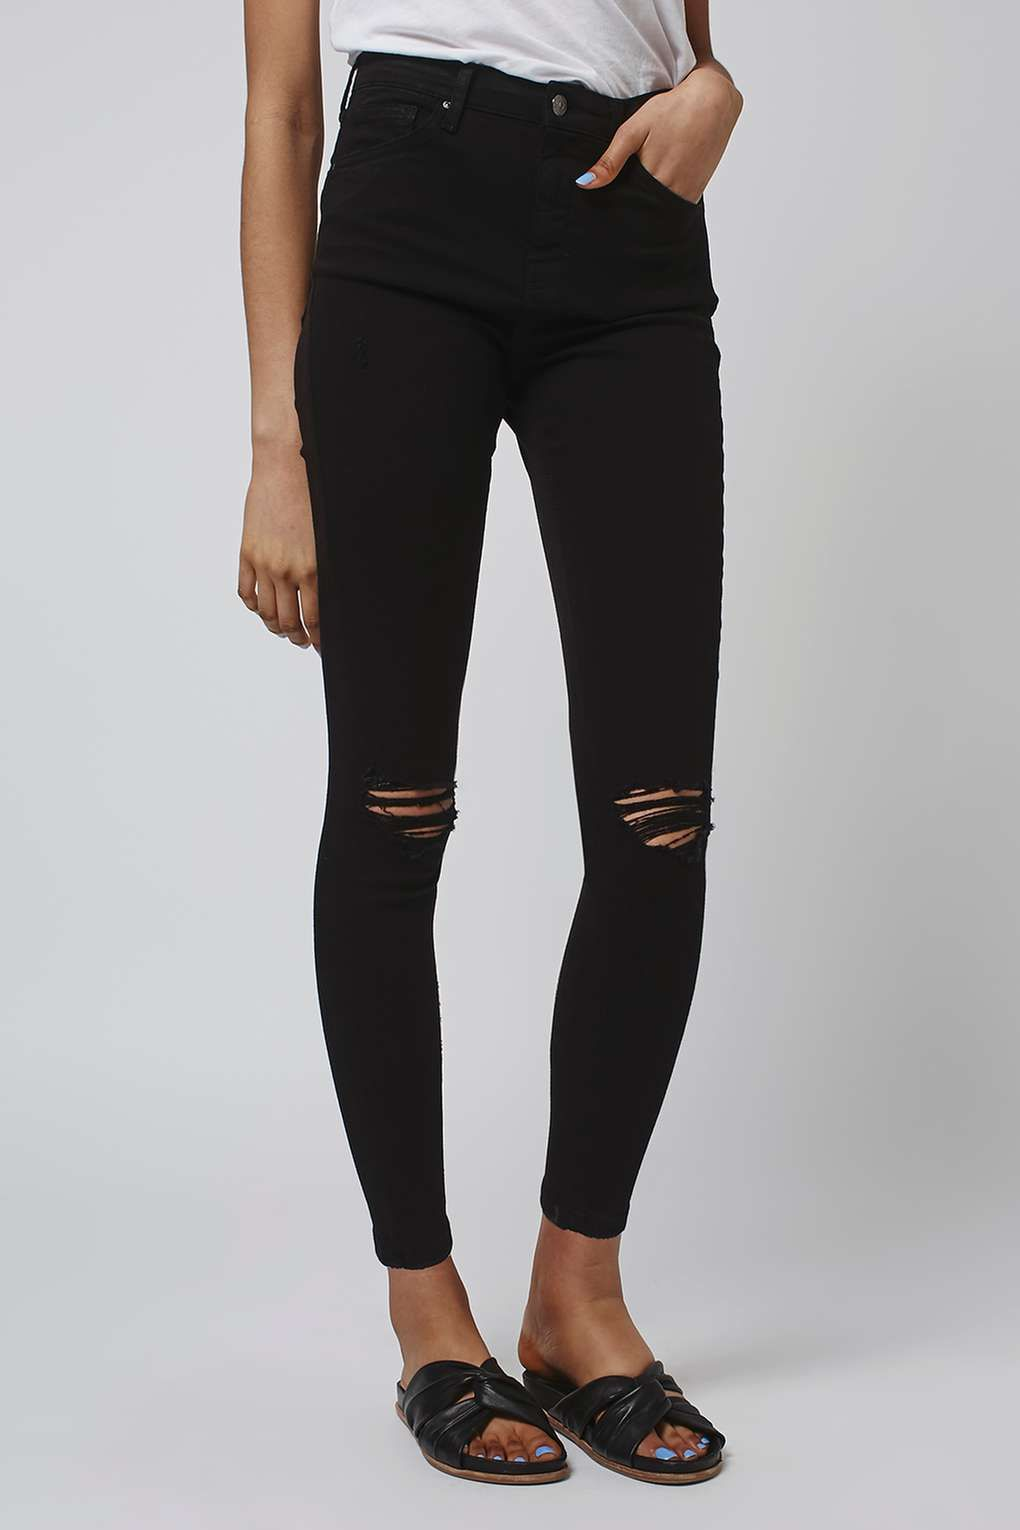 094441d552c Black Ripped Jamie Jeans | wishlist | Jeans, Black ripped jeans ...